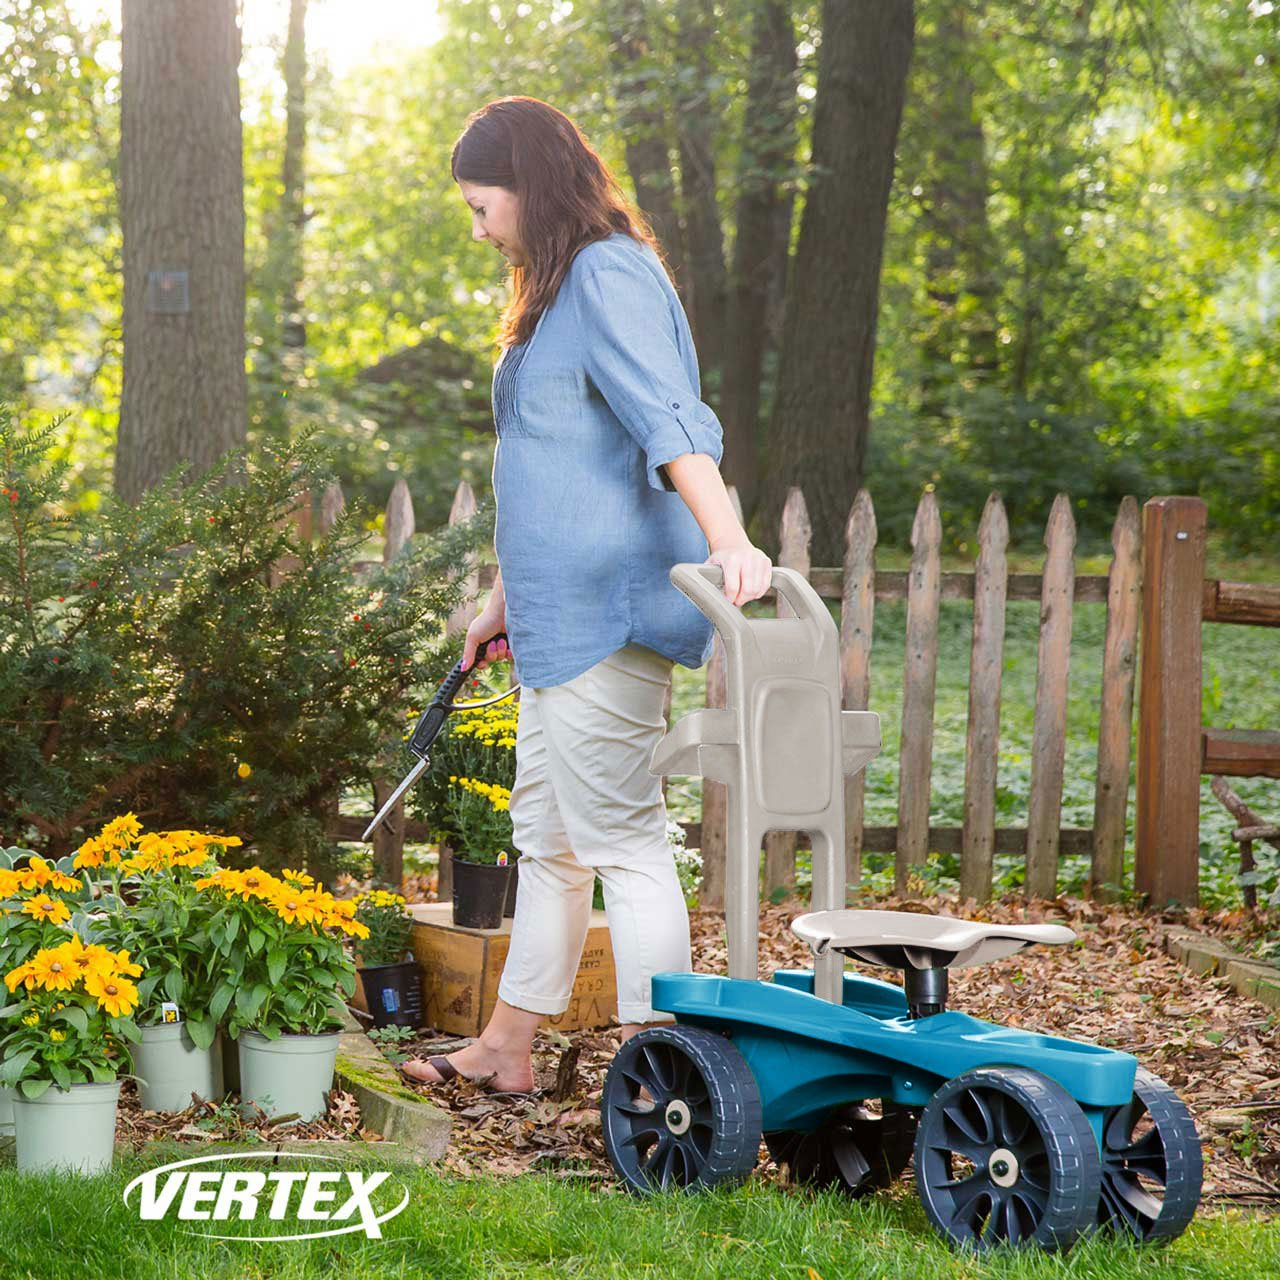 Easy Up Deluxe XTV Rolling Garden Seat and Scoot - Adjustable Swivel Seat, Heavy Duty Wheels, and Ergonomic Design To Assist Standing, Sitting, and Bending Over Made in the USA (Deluxe XTV Teal) by Vertex (Image #4)